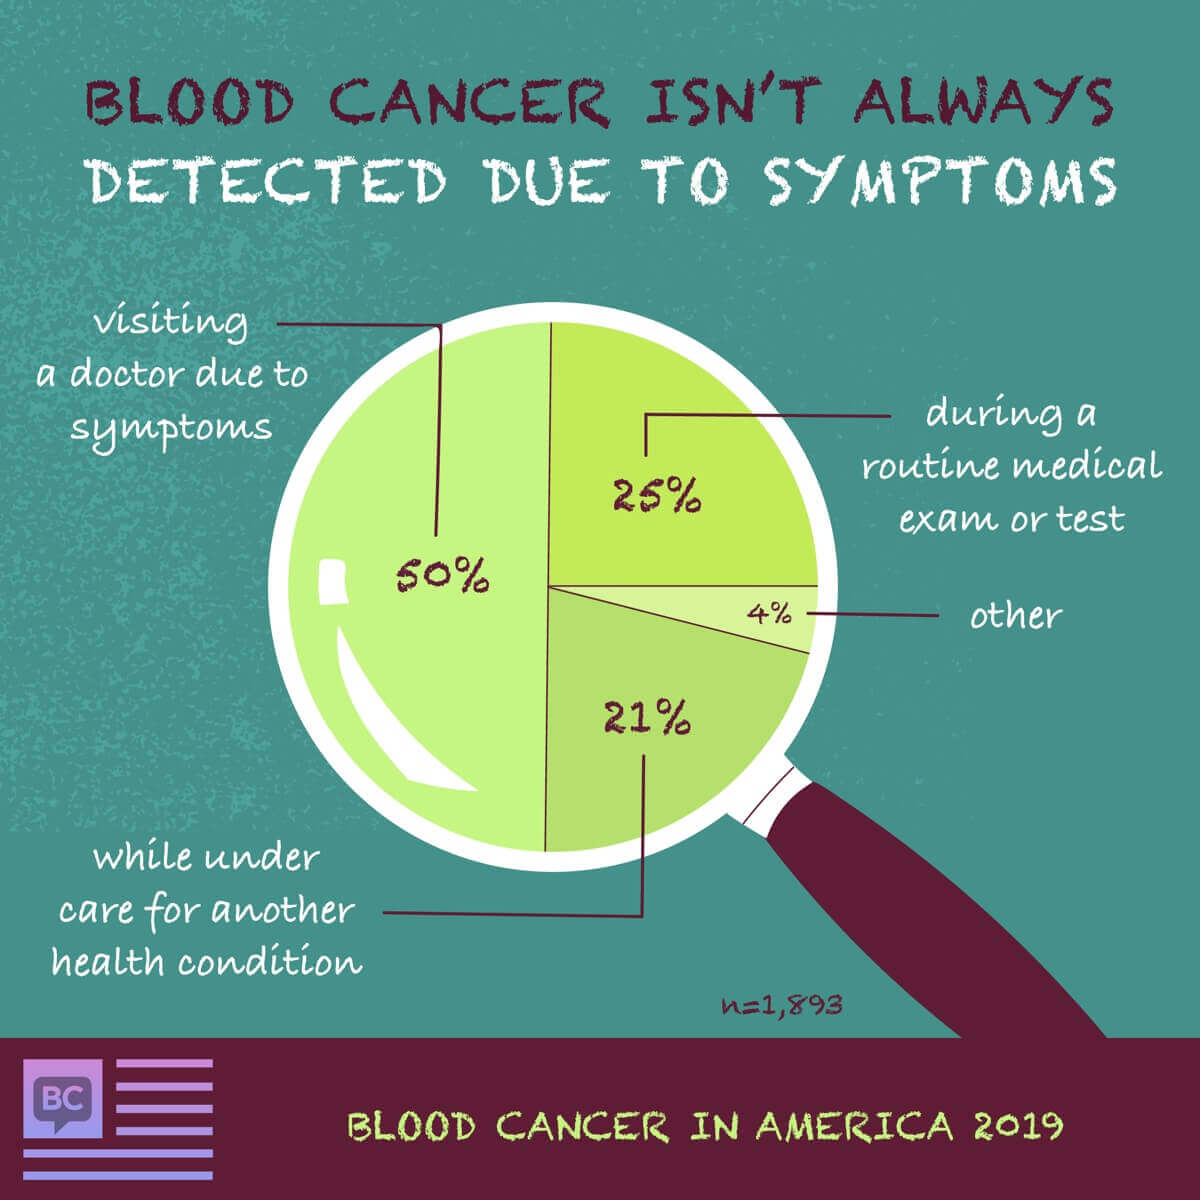 50% of respondents had blood cancer detected due to symptoms. Others were found by routine exams or while under care for other conditions